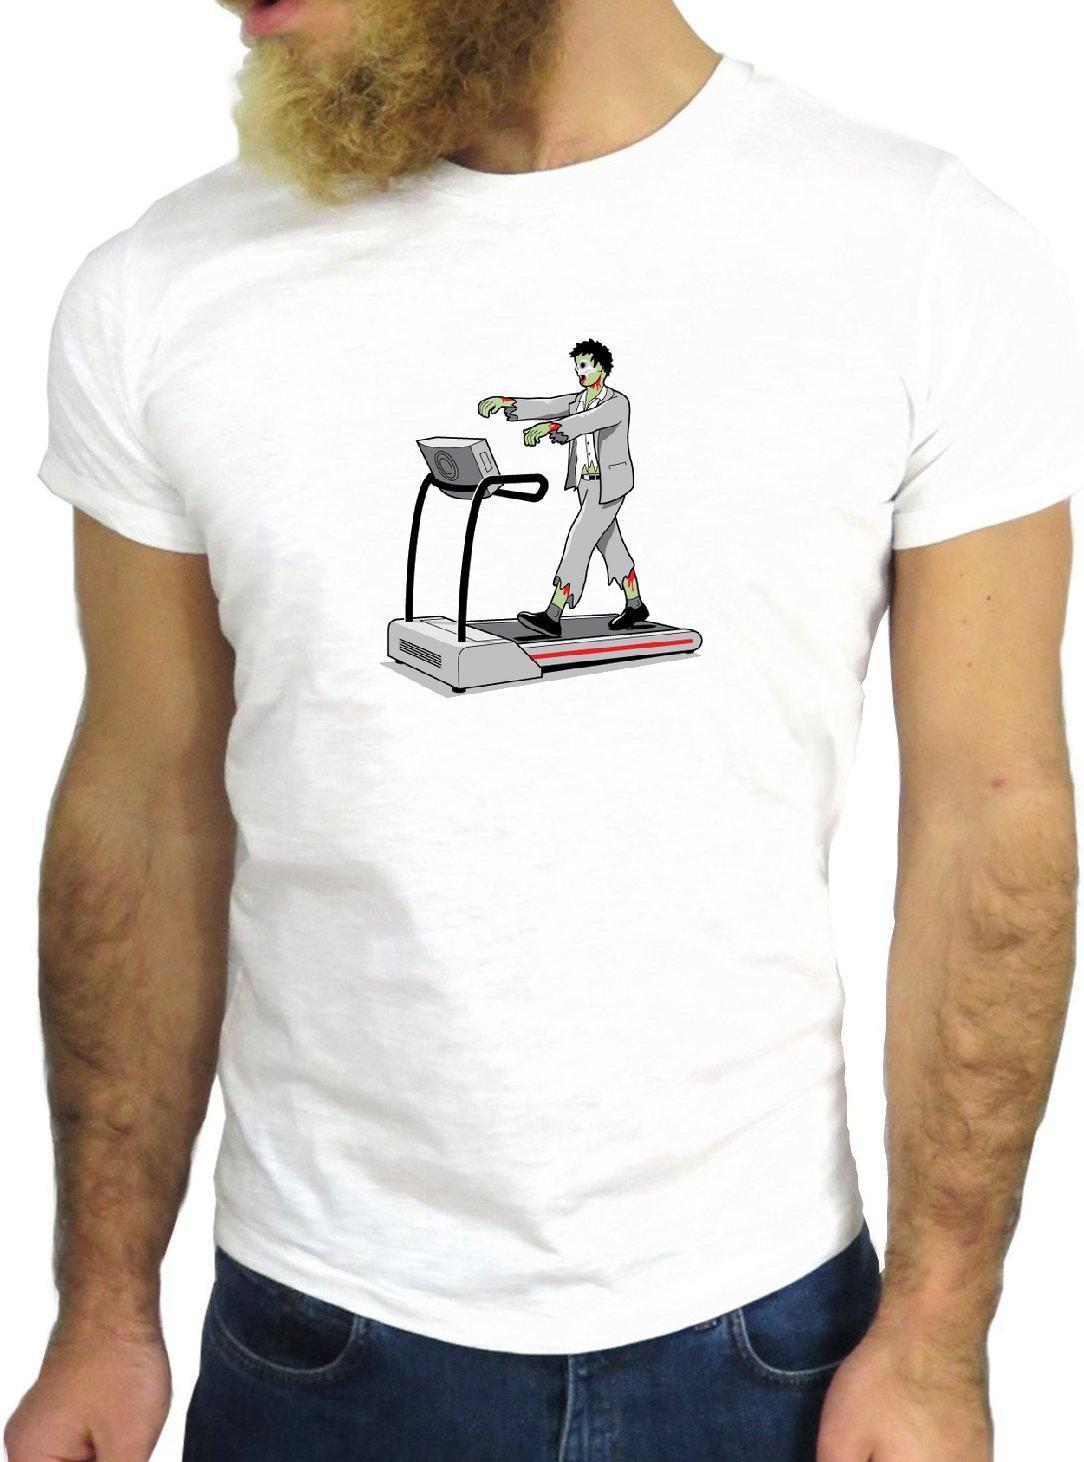 T-SHIRT JODE Z3672 TAPIS ROULANT GYM FRANKENSTEIN FUNNY COOL FASHION GGG24